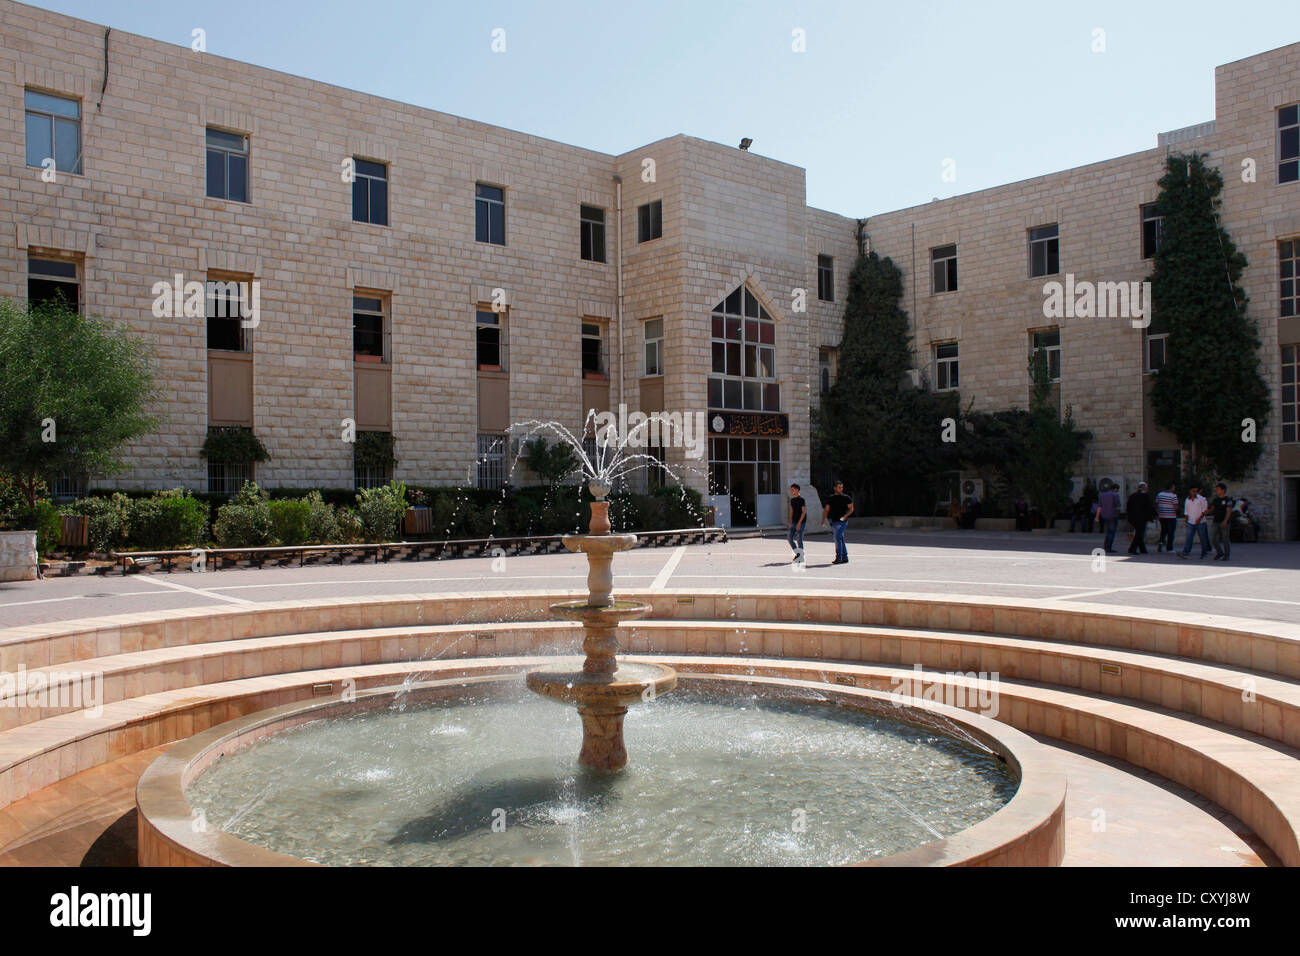 Al Quds university in Abu Dis a Palestinian village in the Jerusalem Governorate of the Palestinian National Authority - Stock Image